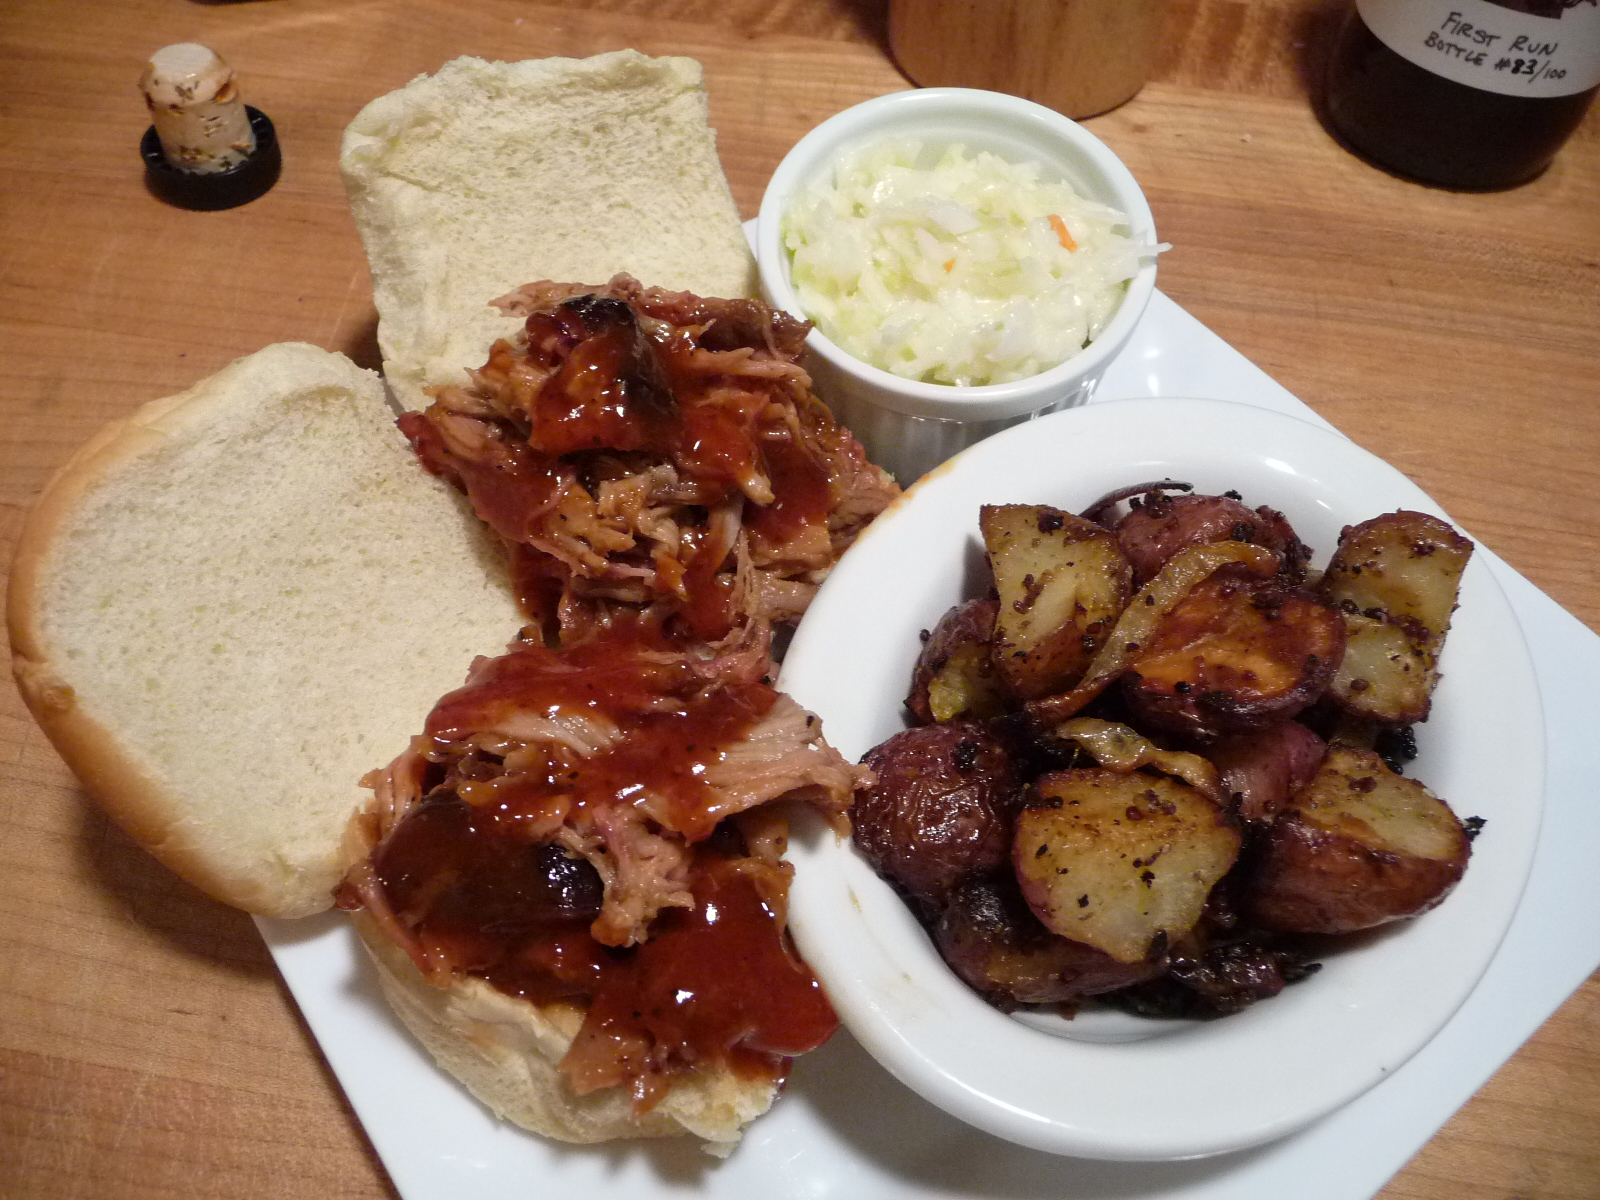 Outstanding dinner of pulled pork with Kramers and mustard potatoes